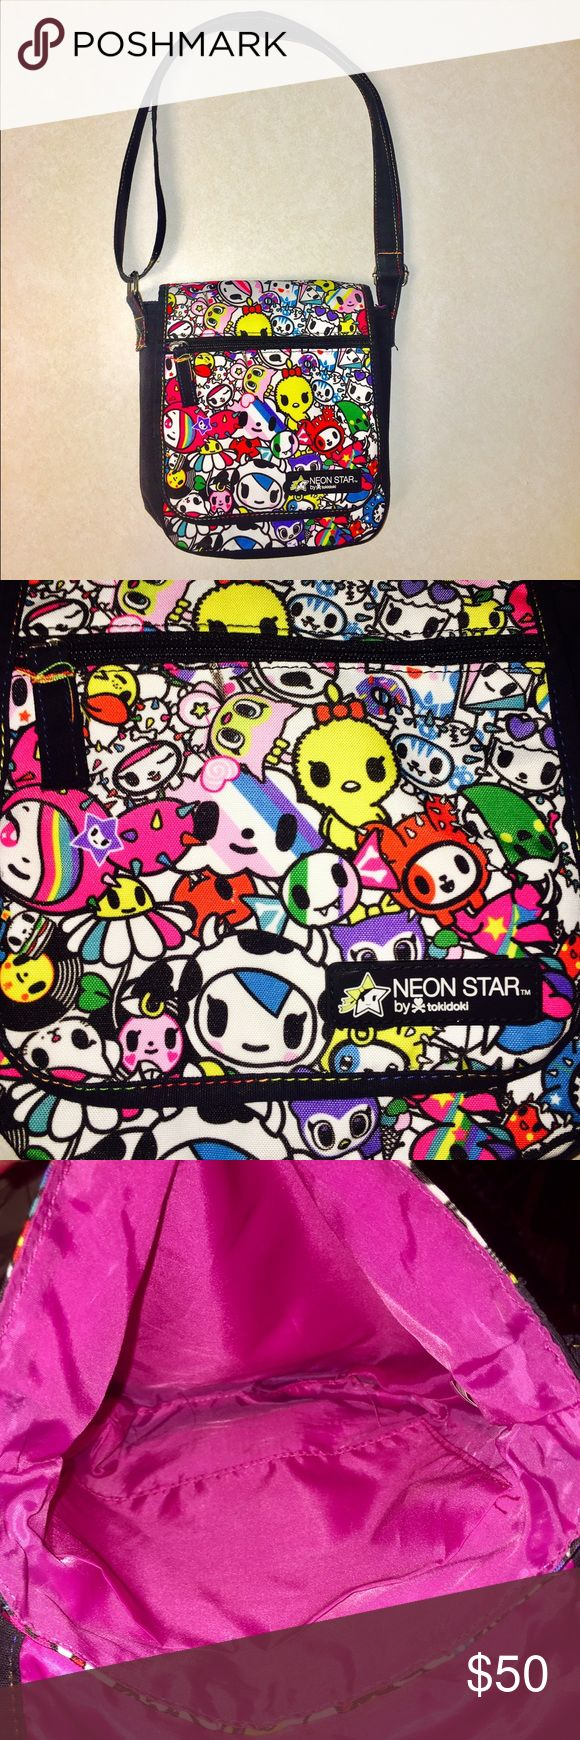 """Brand TokiDoki Crossbody Purse  Brand new without tags & in flawless condition! This Crossbody purse measures 8"""" across, & 9.5"""" from top to bottom. Super kawaii anime-like print with vibrant colors. Neon Star for TokiDoki Limited Edition. Compartment inside purse, as well as zip-close pouch on opening flap. Magnetic closure for main part of the purse. Adjustable strap w/ neon accents Bags Crossbody Bags"""